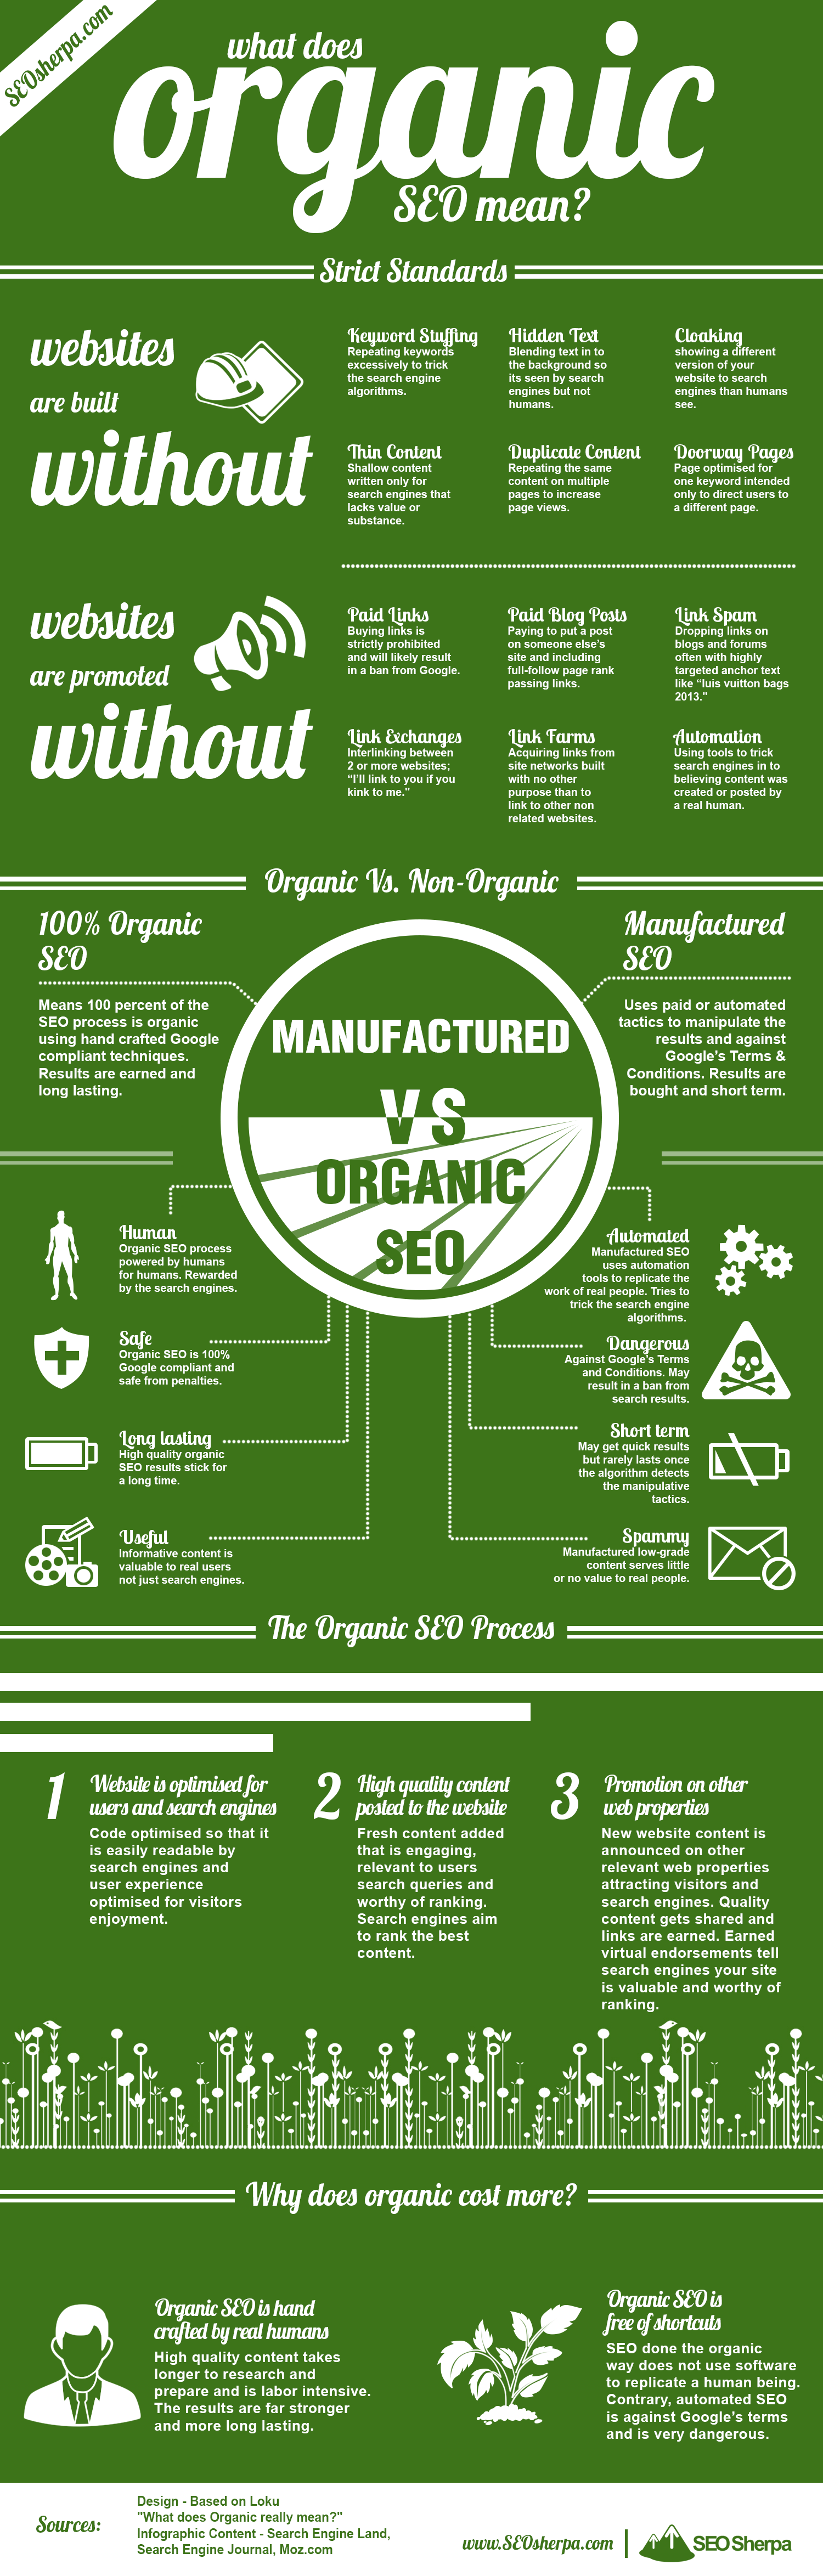 What Does Organic SEO Mean? [Infographic]